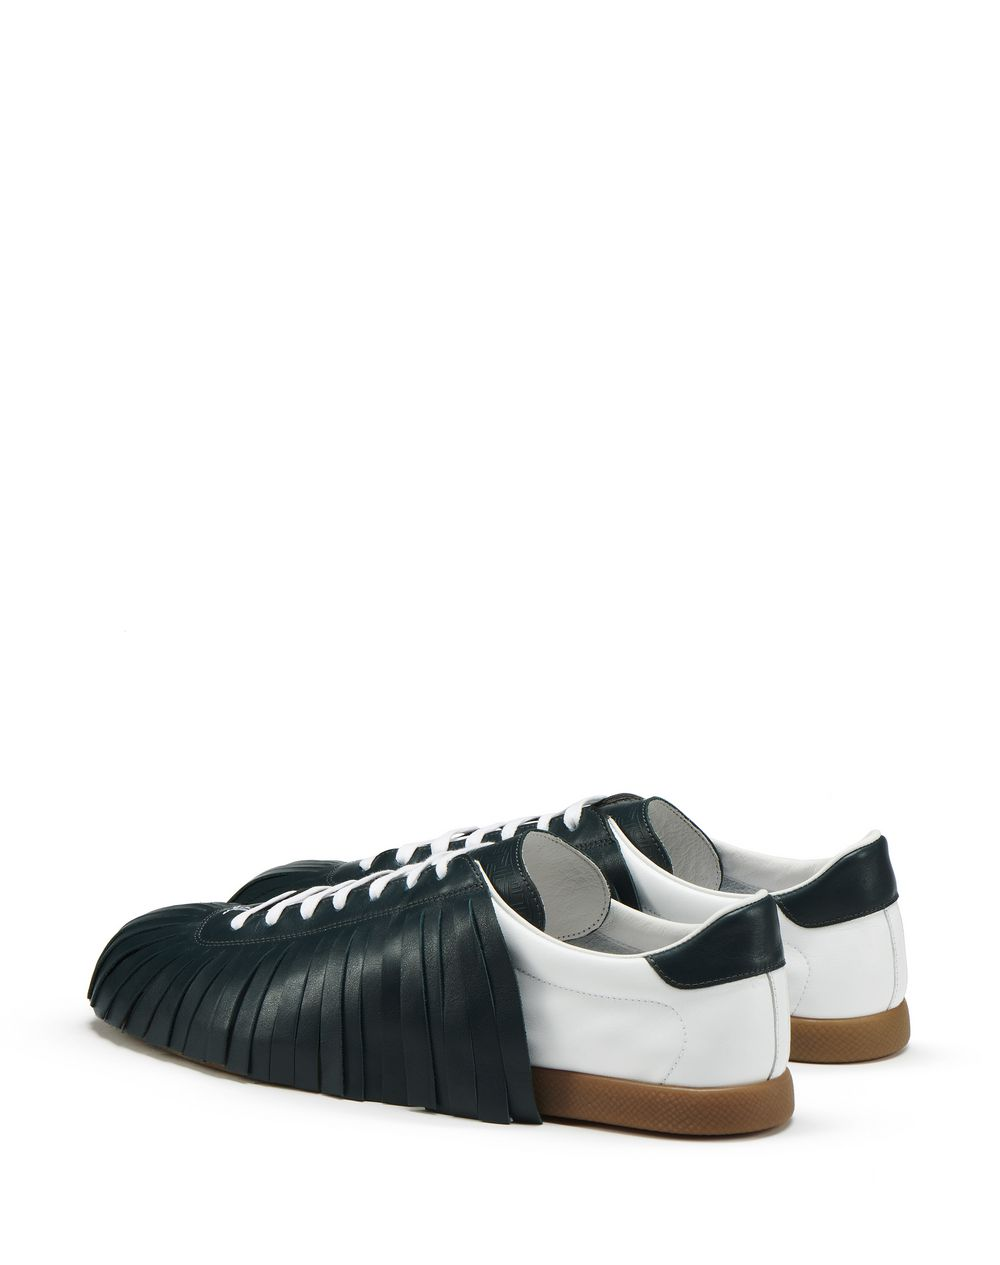 LOW-TOP FRINGE SNEAKERS - Lanvin